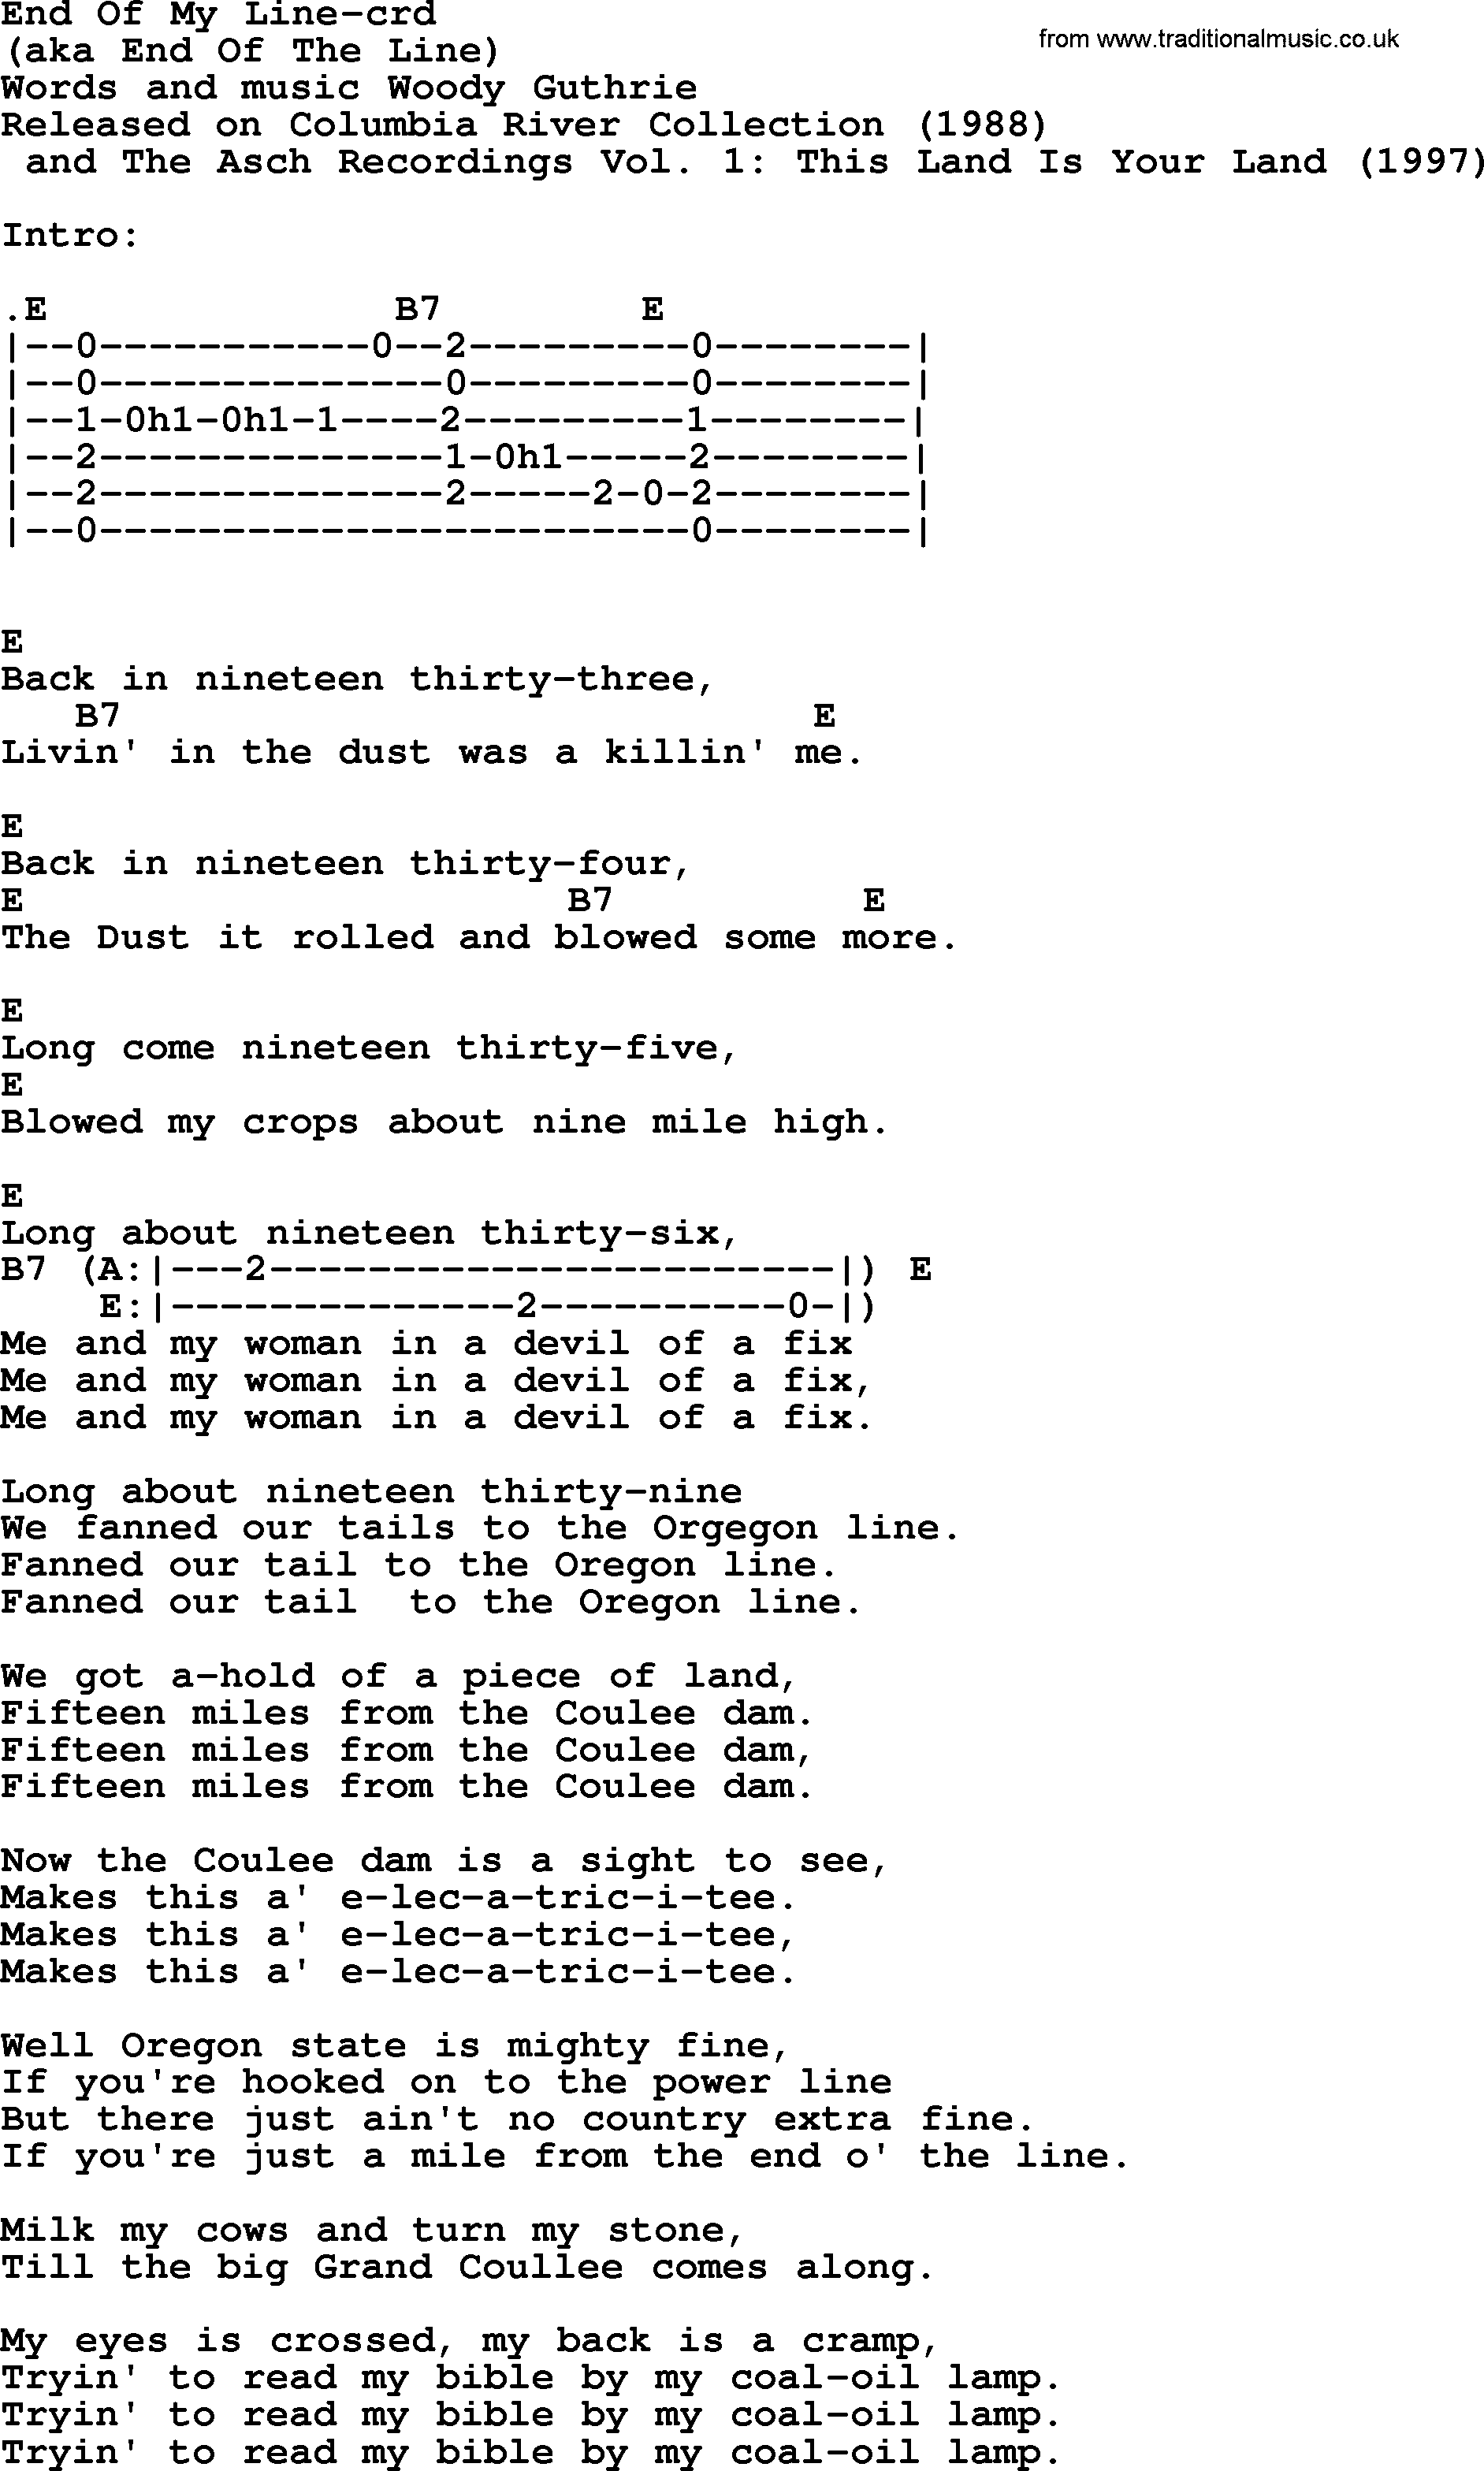 Woody Guthrie Song End Of My Line Lyrics And Chords